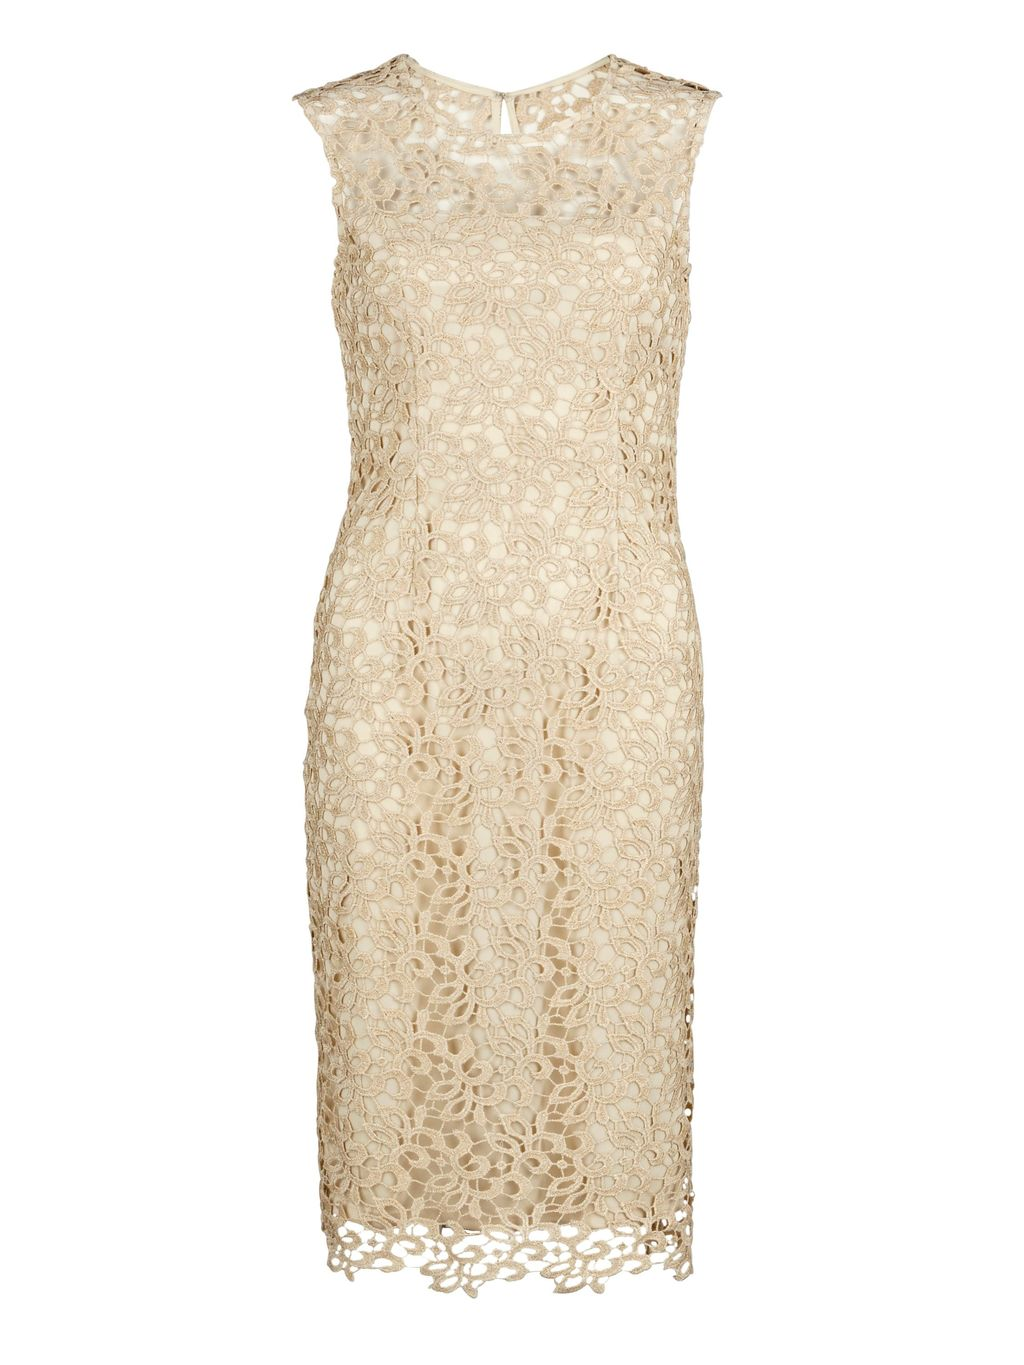 Metallic Guipure Dress, Beige - style: shift; fit: tailored/fitted; sleeve style: sleeveless; predominant colour: ivory/cream; occasions: evening, occasion; length: on the knee; fibres: polyester/polyamide - 100%; neckline: crew; sleeve length: sleeveless; texture group: lace; pattern type: fabric; pattern size: standard; pattern: patterned/print; season: s/s 2016; wardrobe: event